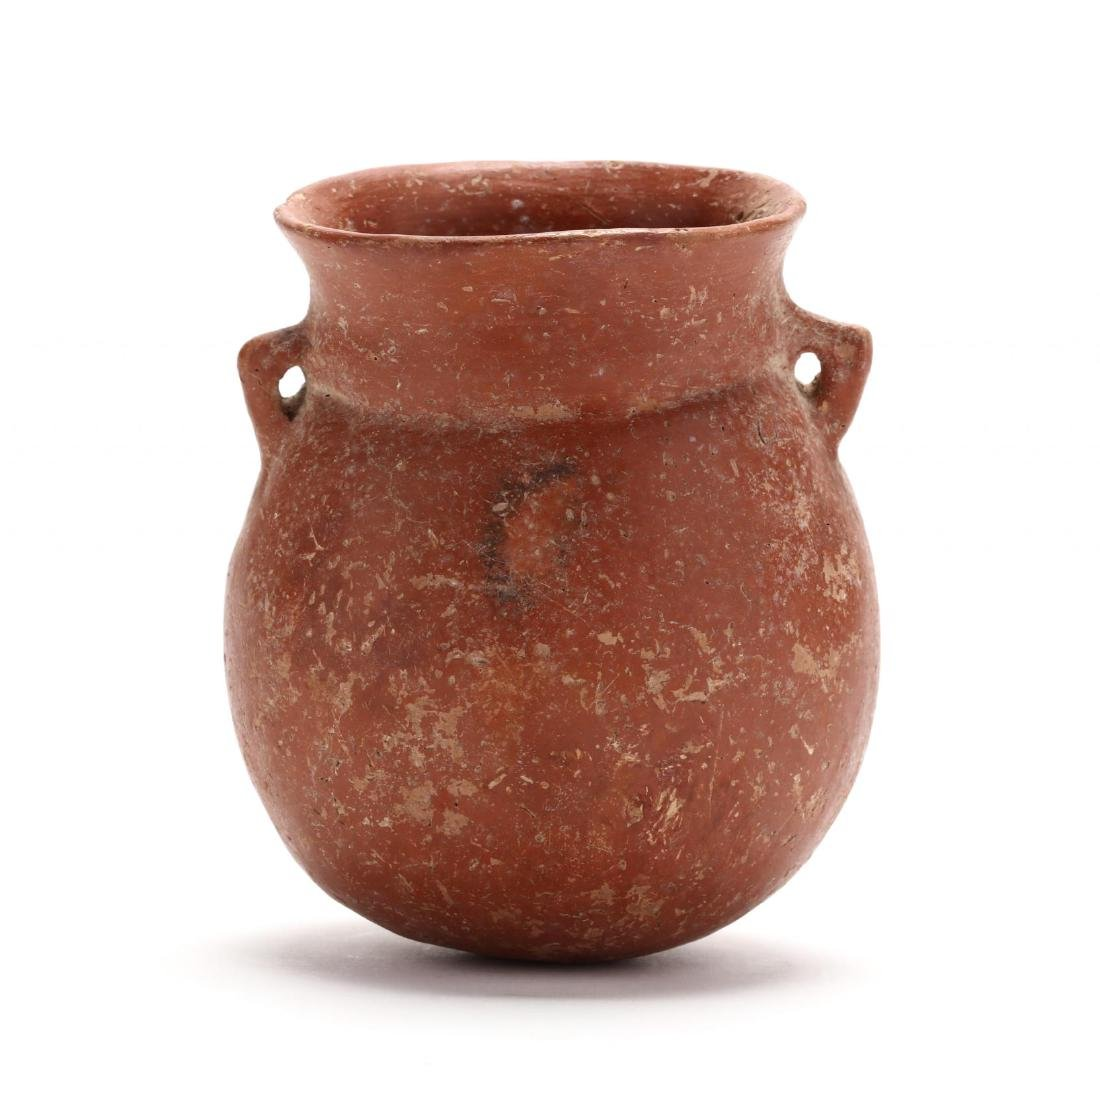 Cypriot Middle Bronze Age Polished Red Ware Jar